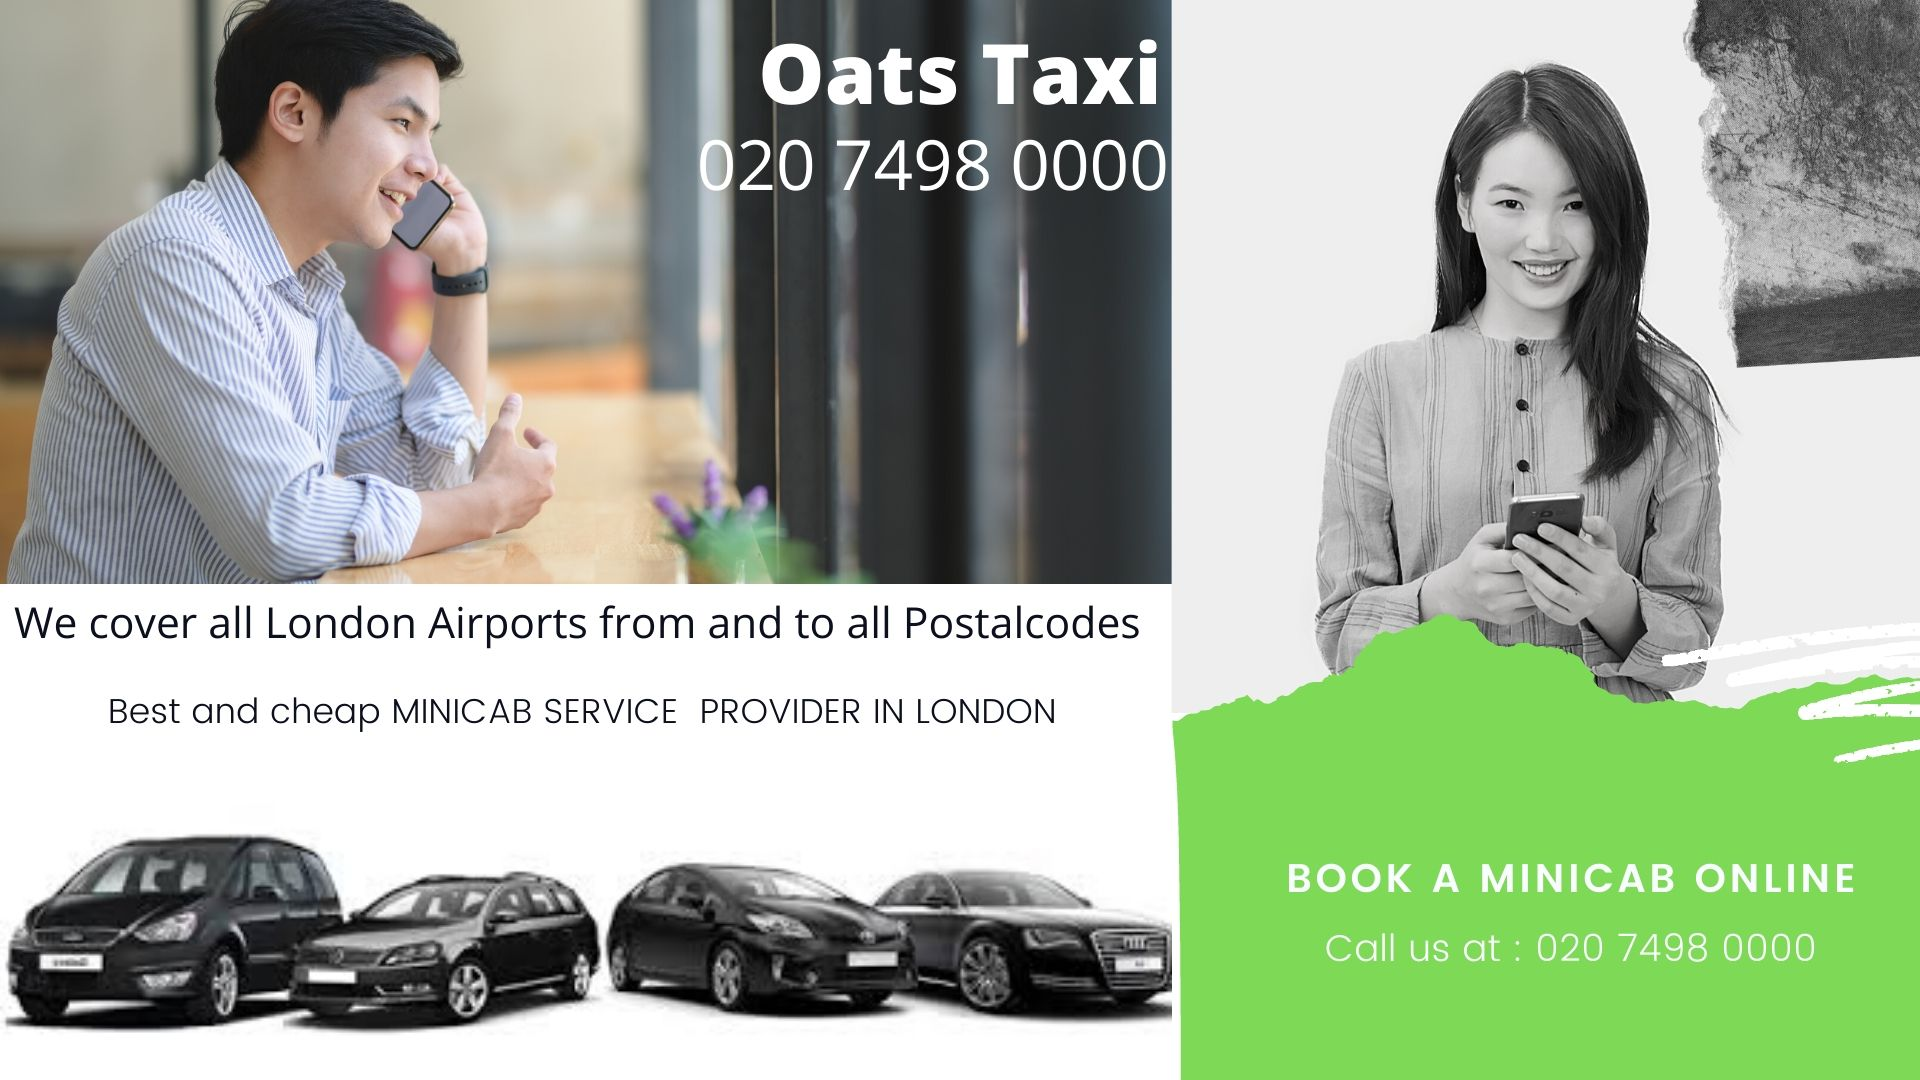 Nearest Minicab Office in Piccadilly | Minicab Gatwick Airport | Call now : 02074980000